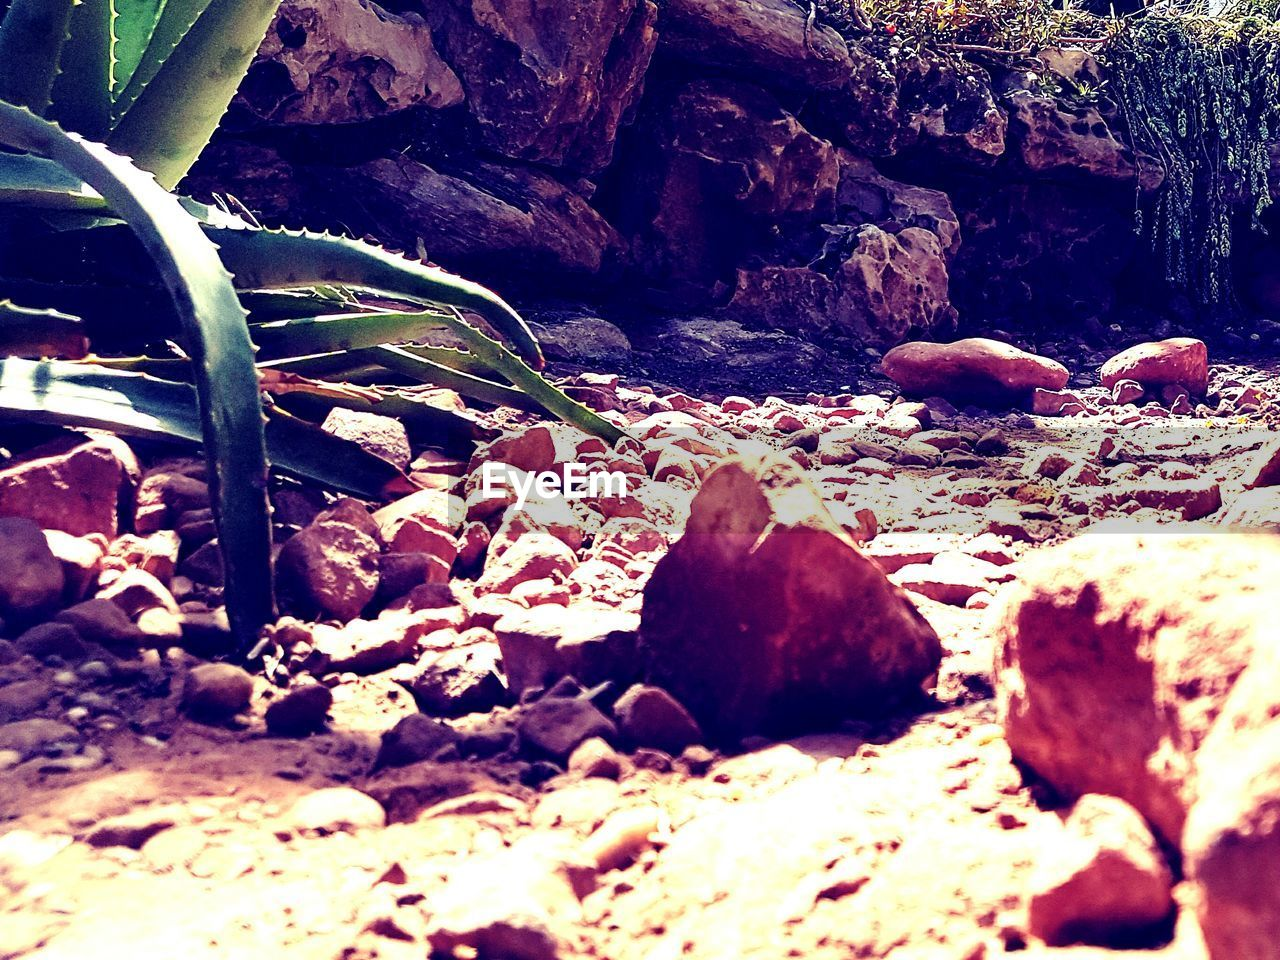 nature, rock - object, beauty in nature, day, outdoors, no people, tranquility, beach, sand, pebble beach